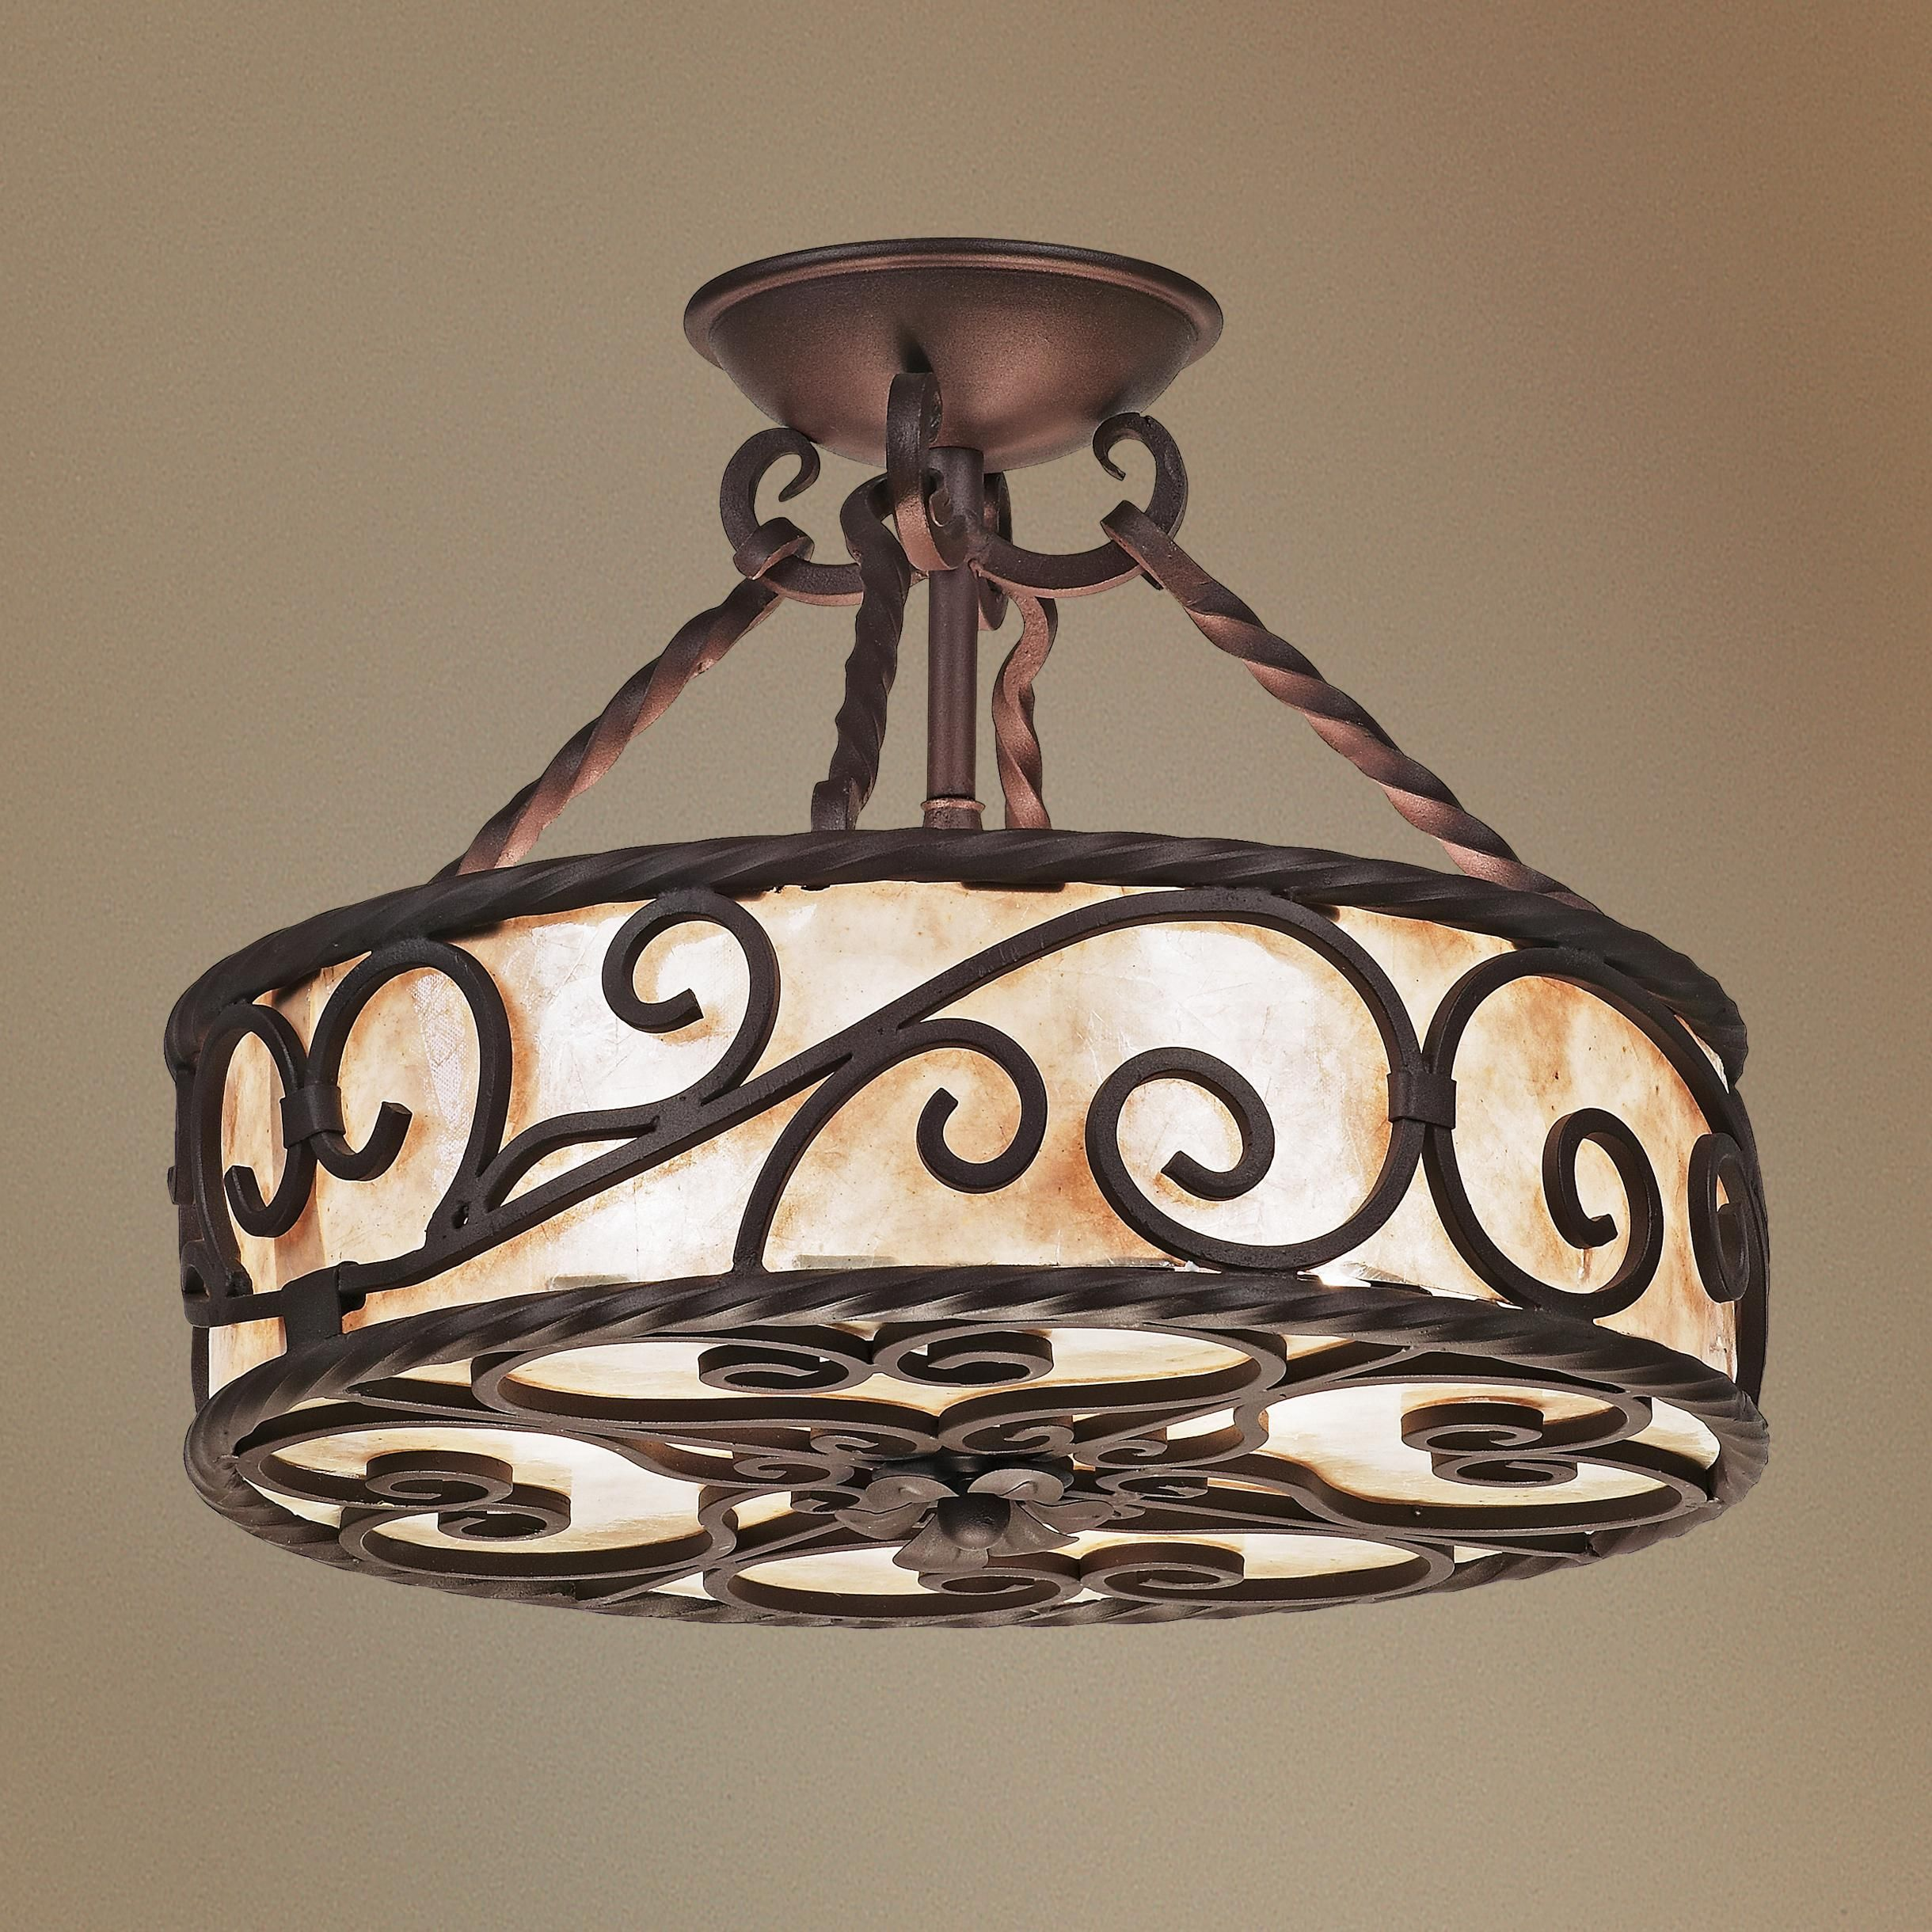 Natural Mica Collection 15 Wide Iron Ceiling Light Fixture